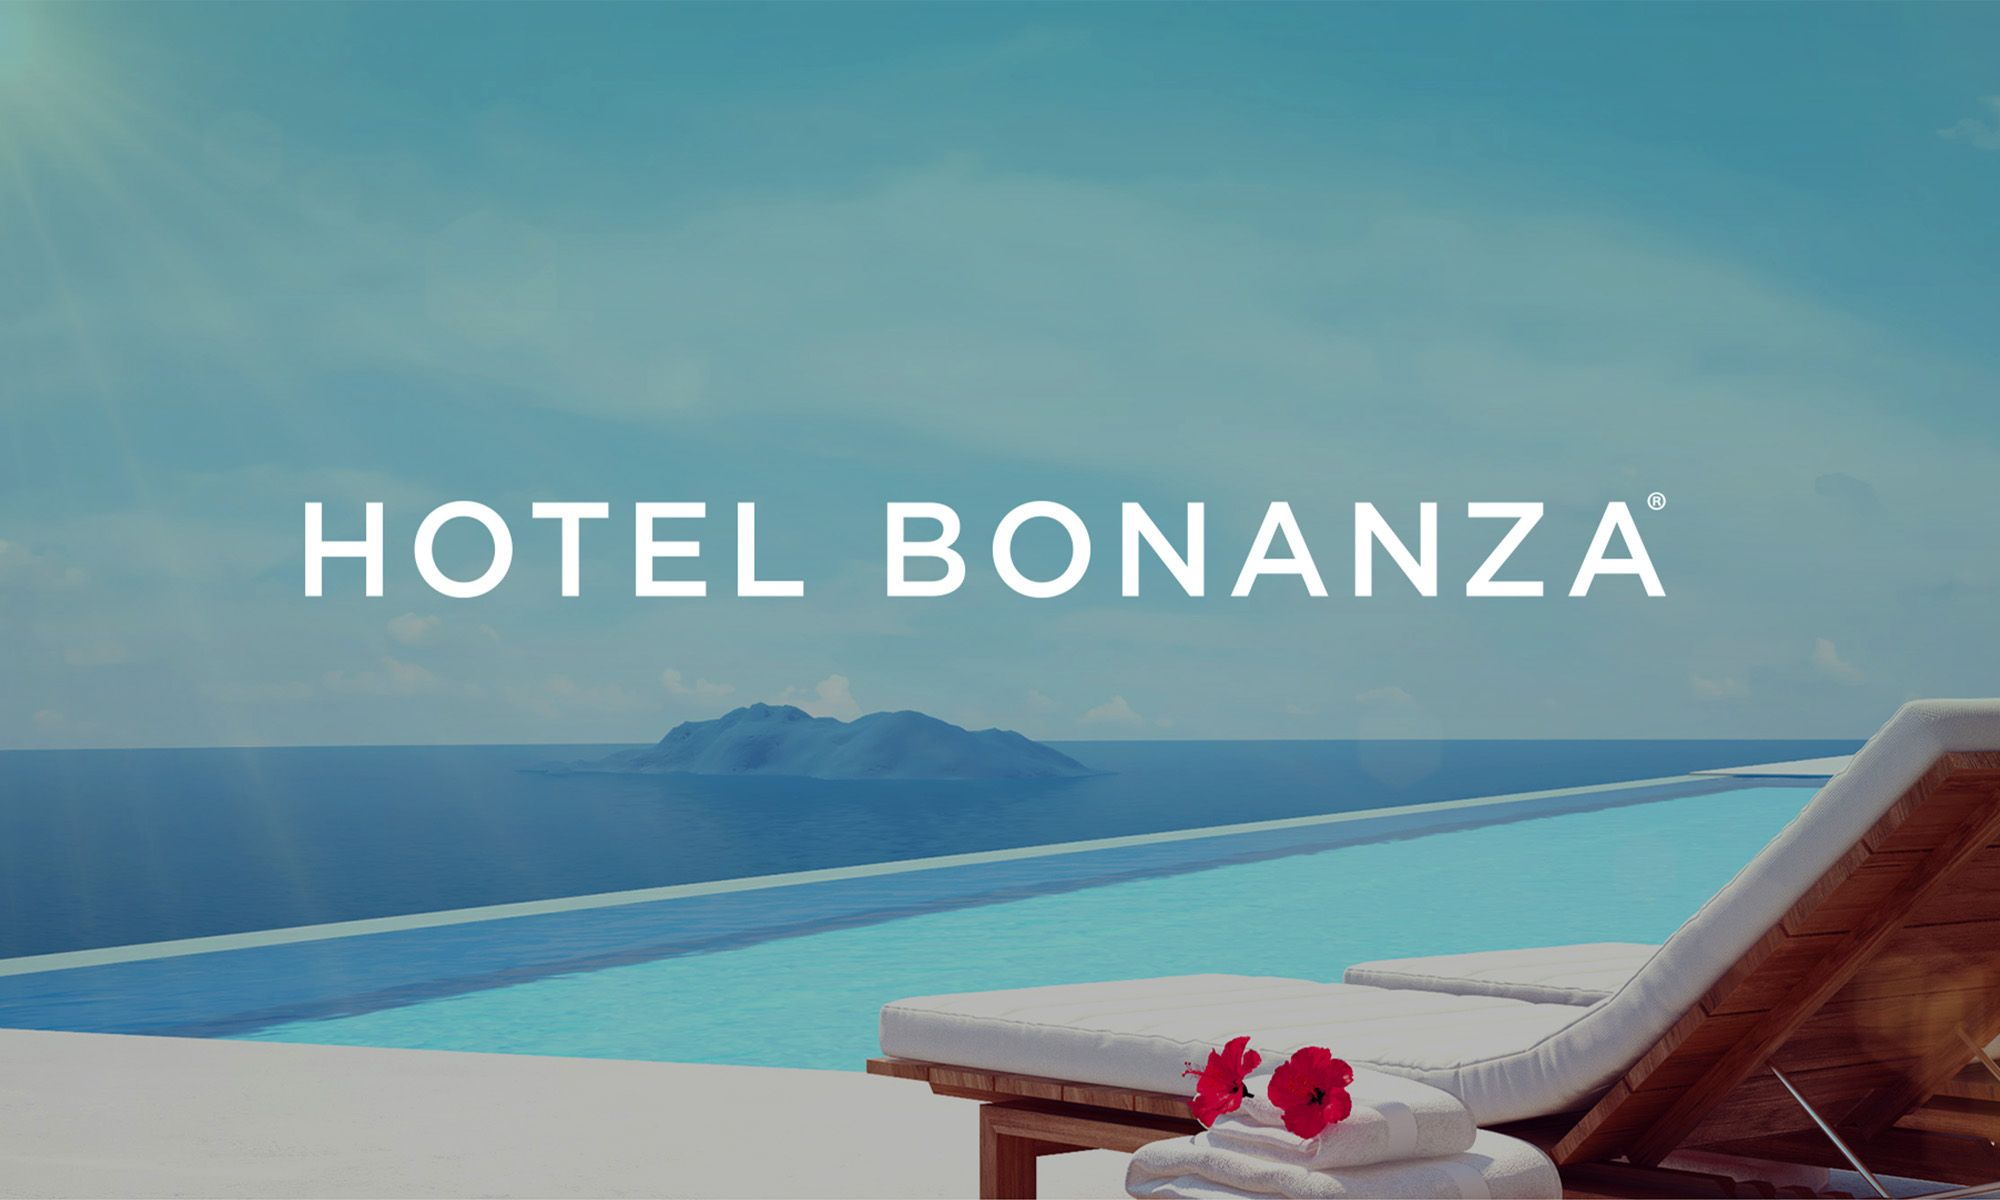 SmartHOTEL announces new connectivity with Hotel Bonanza